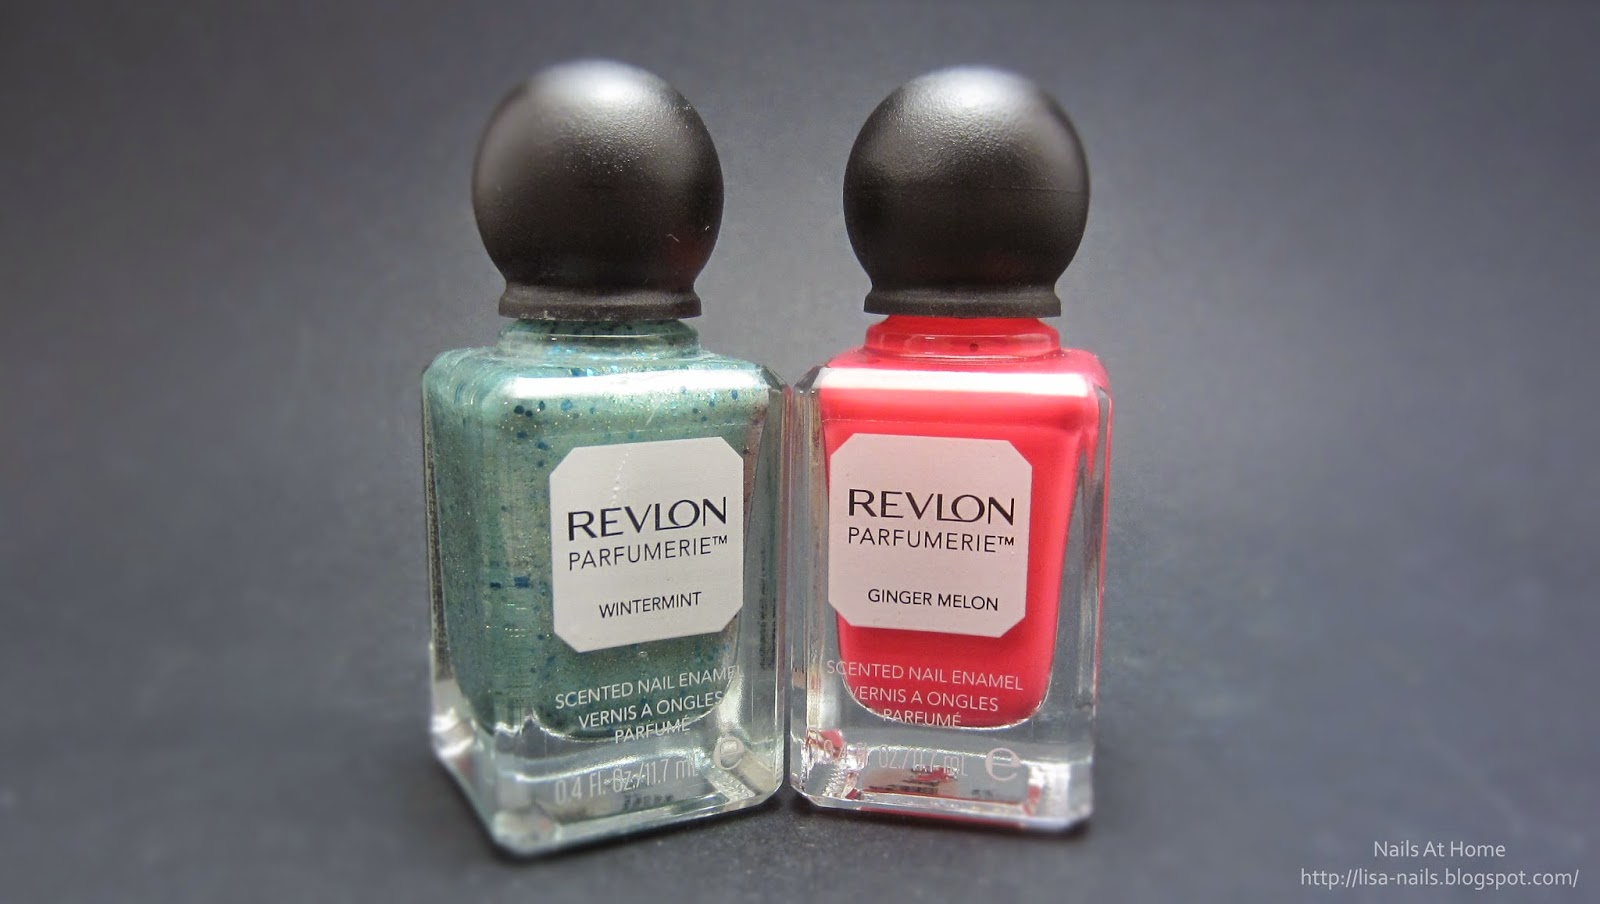 REVLON Parfumerie™ Wintermint and Ginger Melon